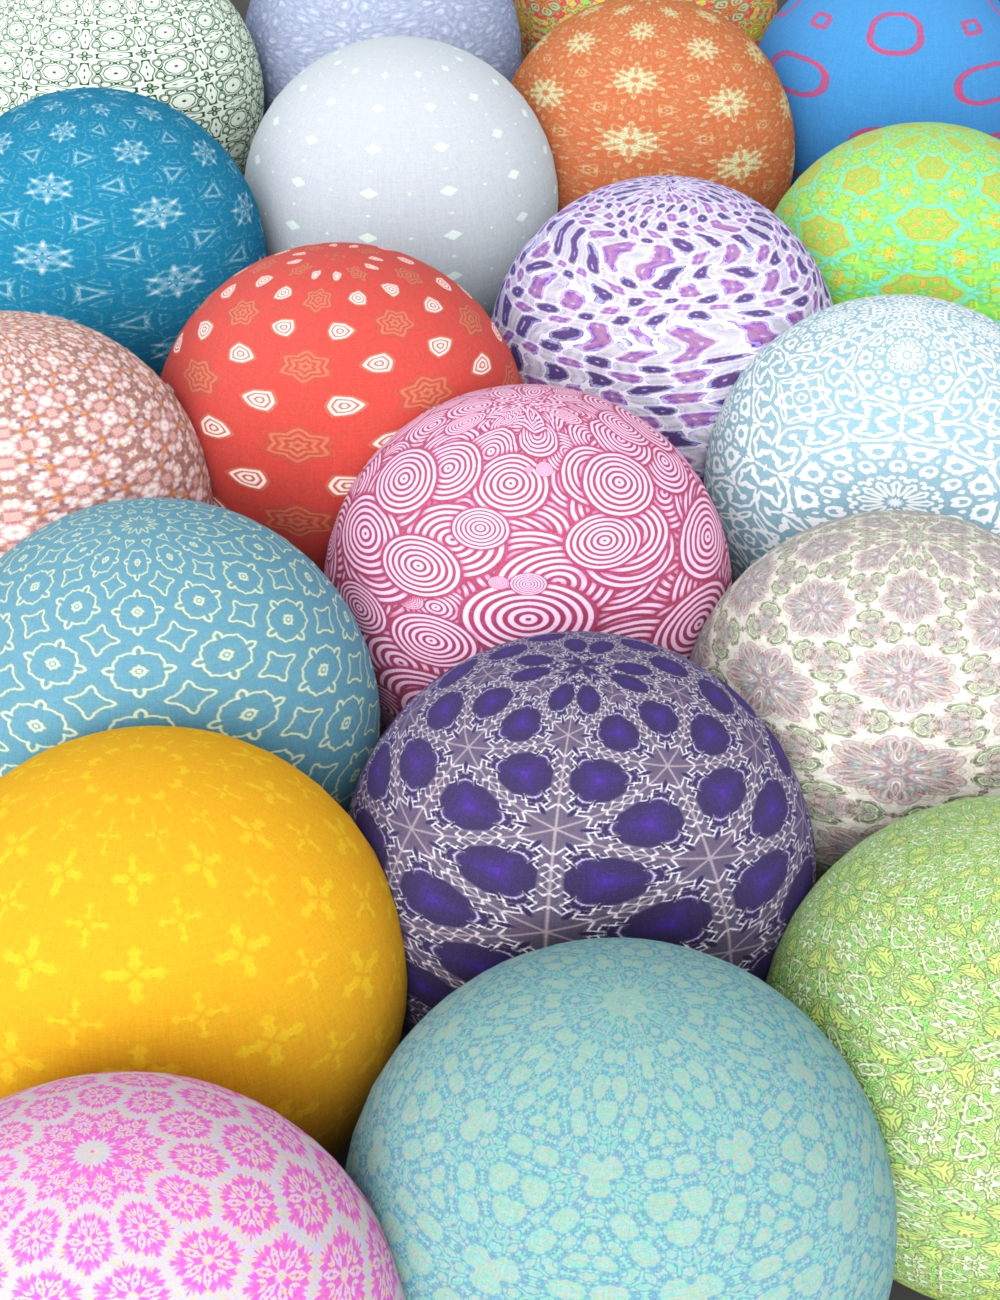 Perfect Pattern Fabric Shaders for Iray by: AHArt, 3D Models by Daz 3D